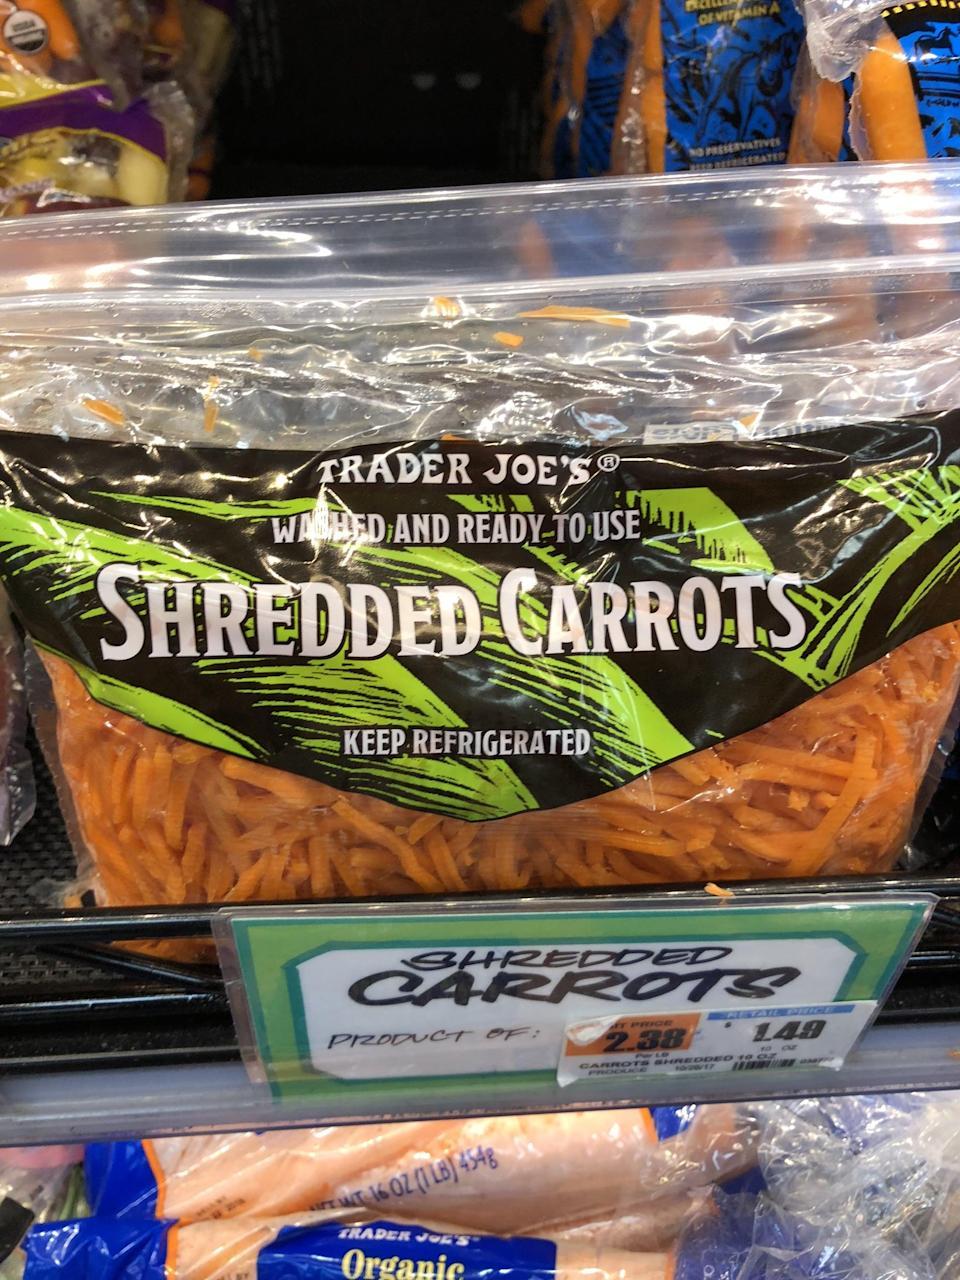 <p>Love carrots in your salads? Forget taking out the cutting board - just use these shredded carrots. You can also sauté them and use as a pasta alternative.</p>